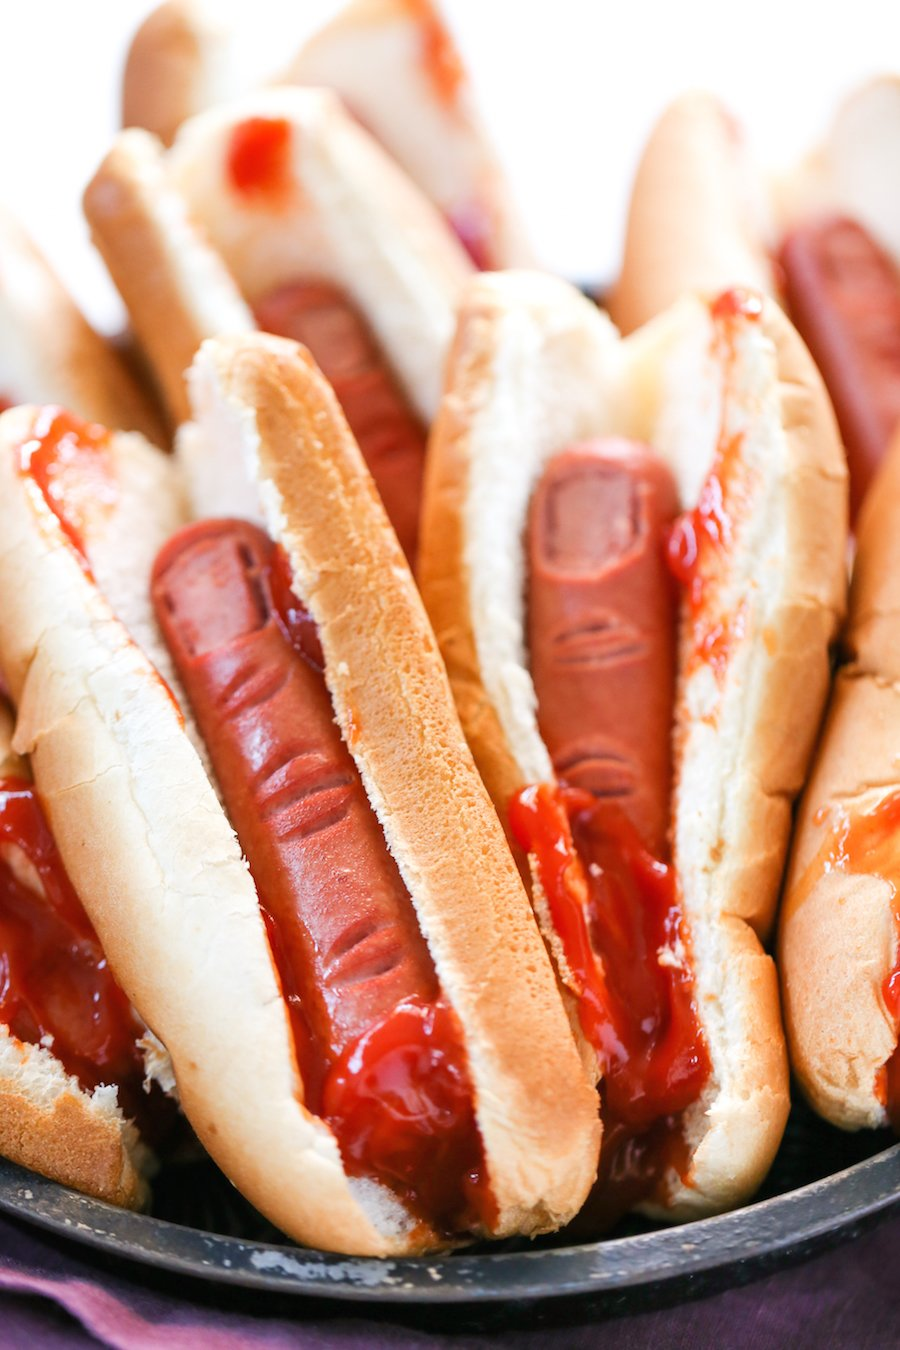 Ketchup On A Hot Dog Is Gross